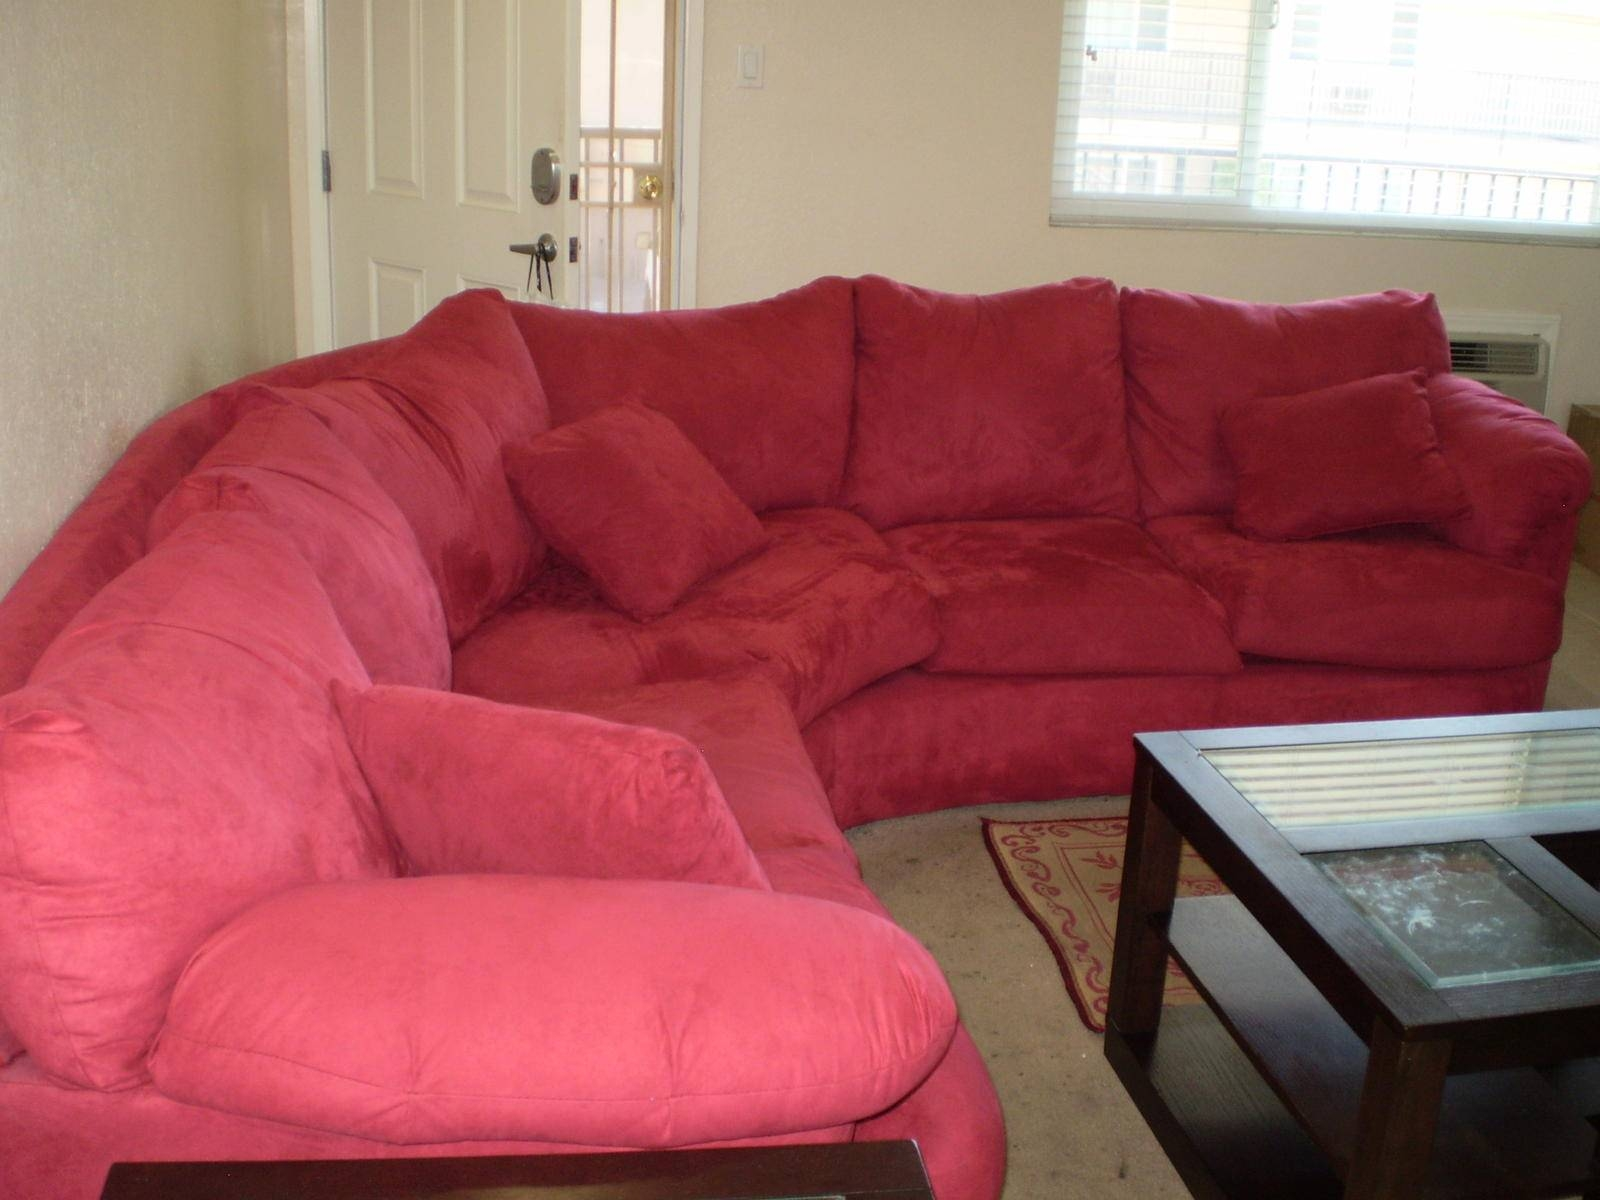 Discounted Leather Sofas Couches For Sale Luxurious Sectional Sofa regarding Funky Sofas For Sale (Image 4 of 30)